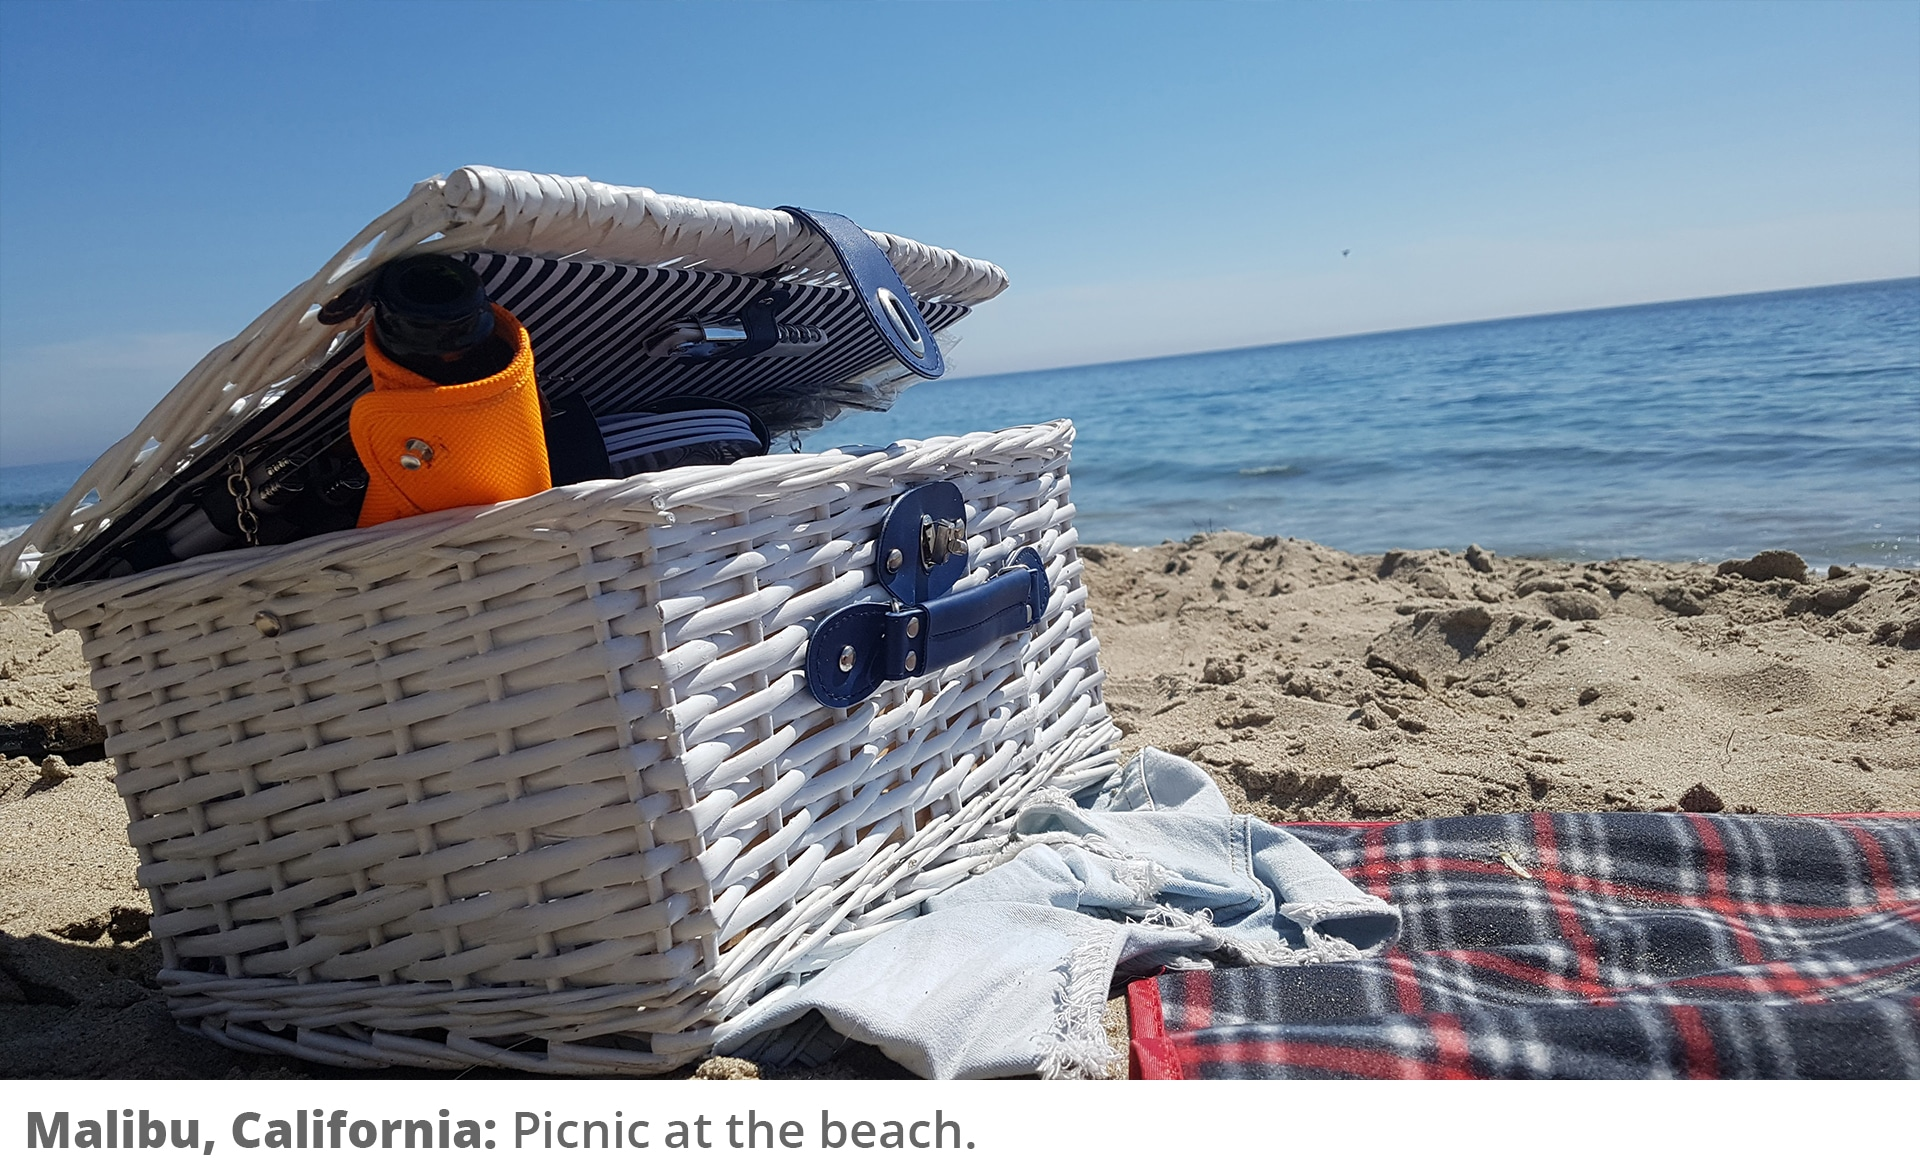 Honeymoon Road Trip - Picnic at the beach